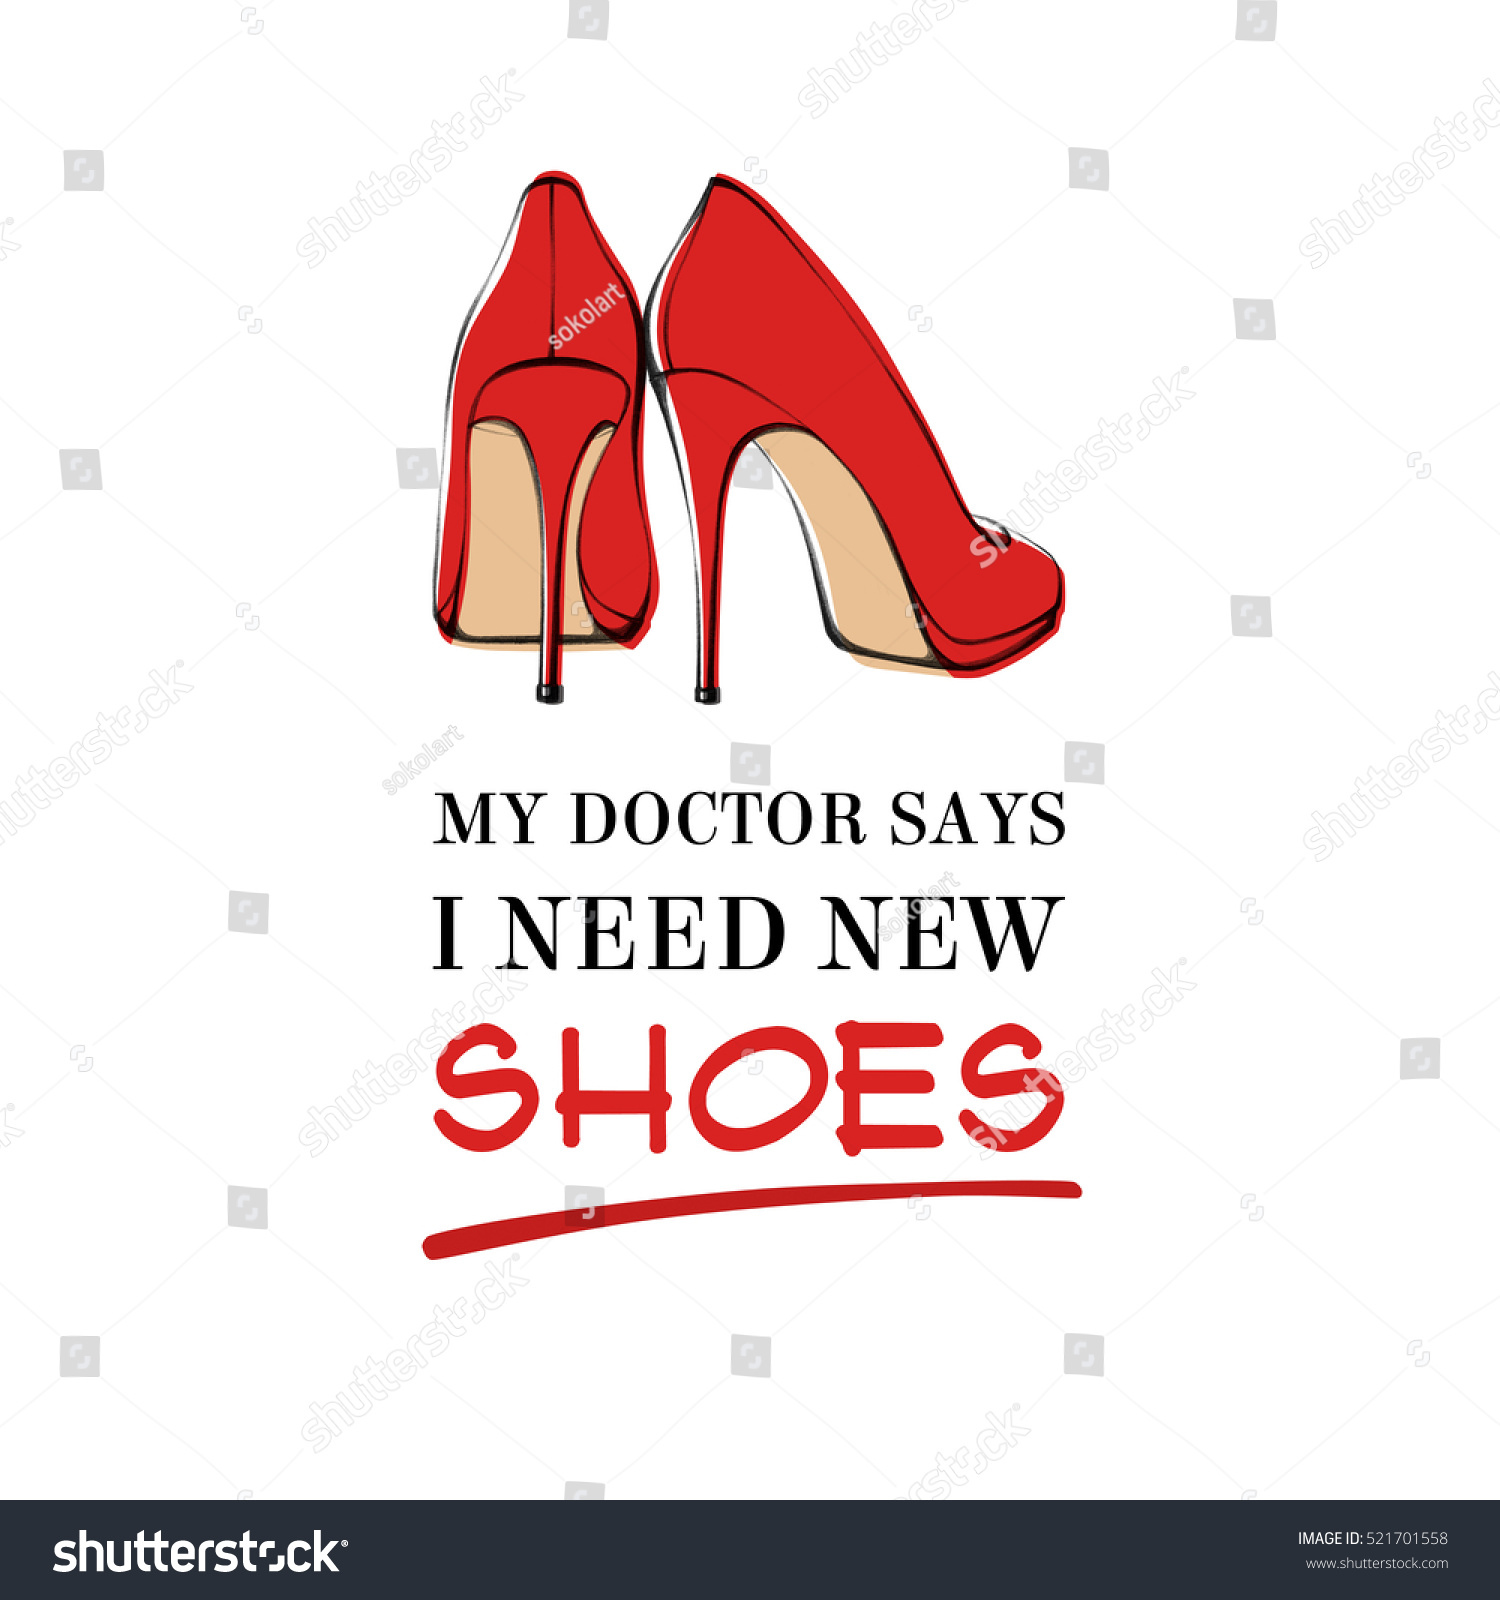 Woman Fashion Accessories Quote Poster My Stock Illustration High Heels Glamour Suede Red Doctor Says I Need New Shoes Trendy Colorful